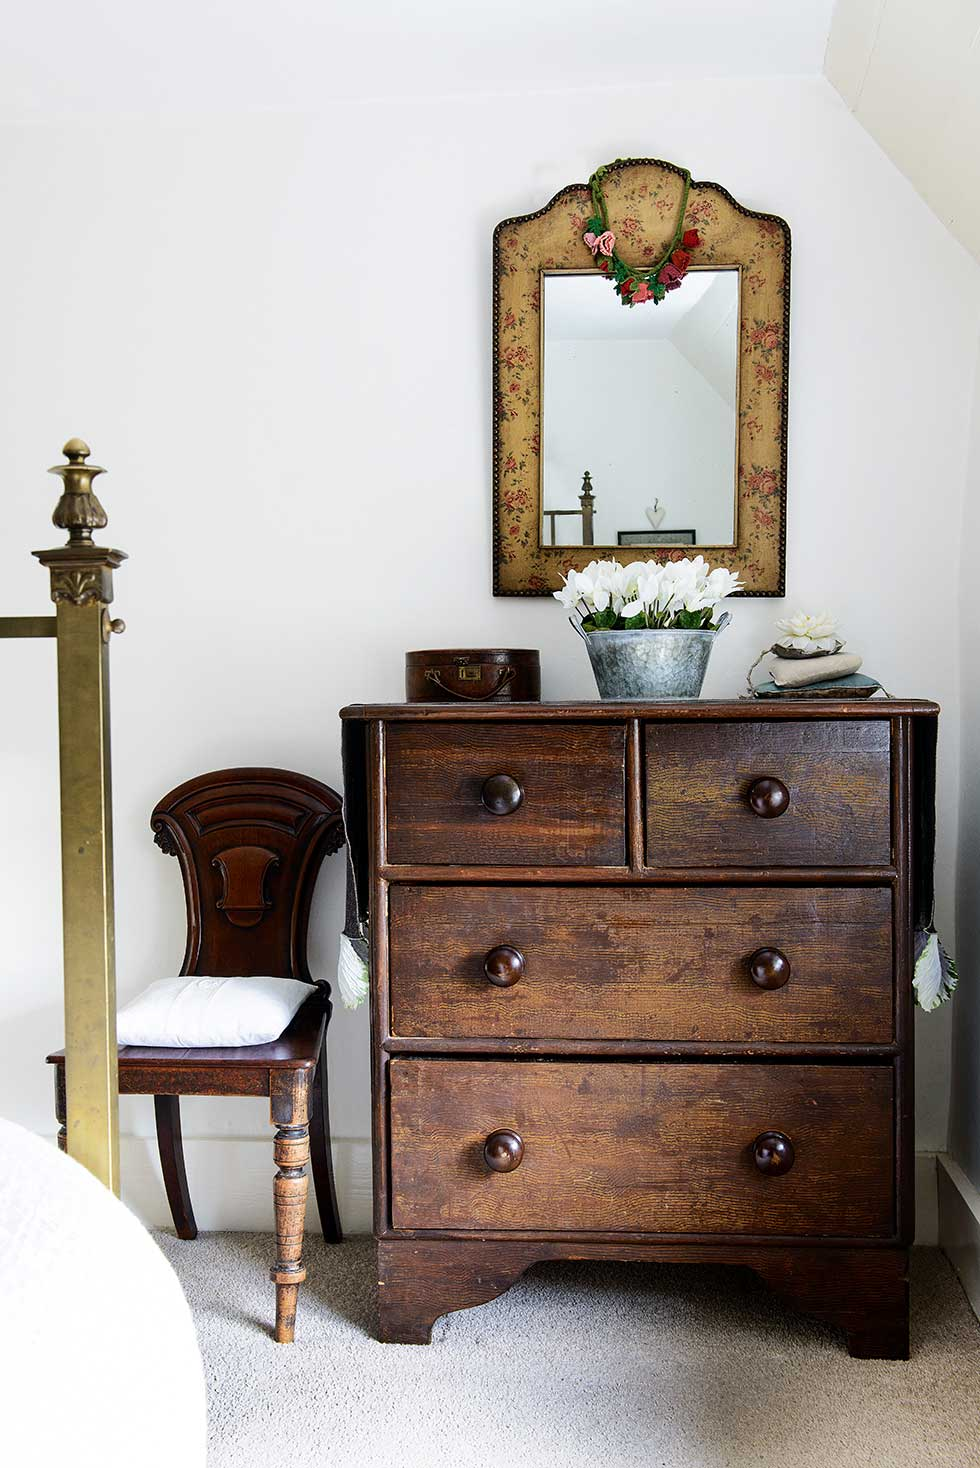 Lewis-powell-cottage-chest-drawers